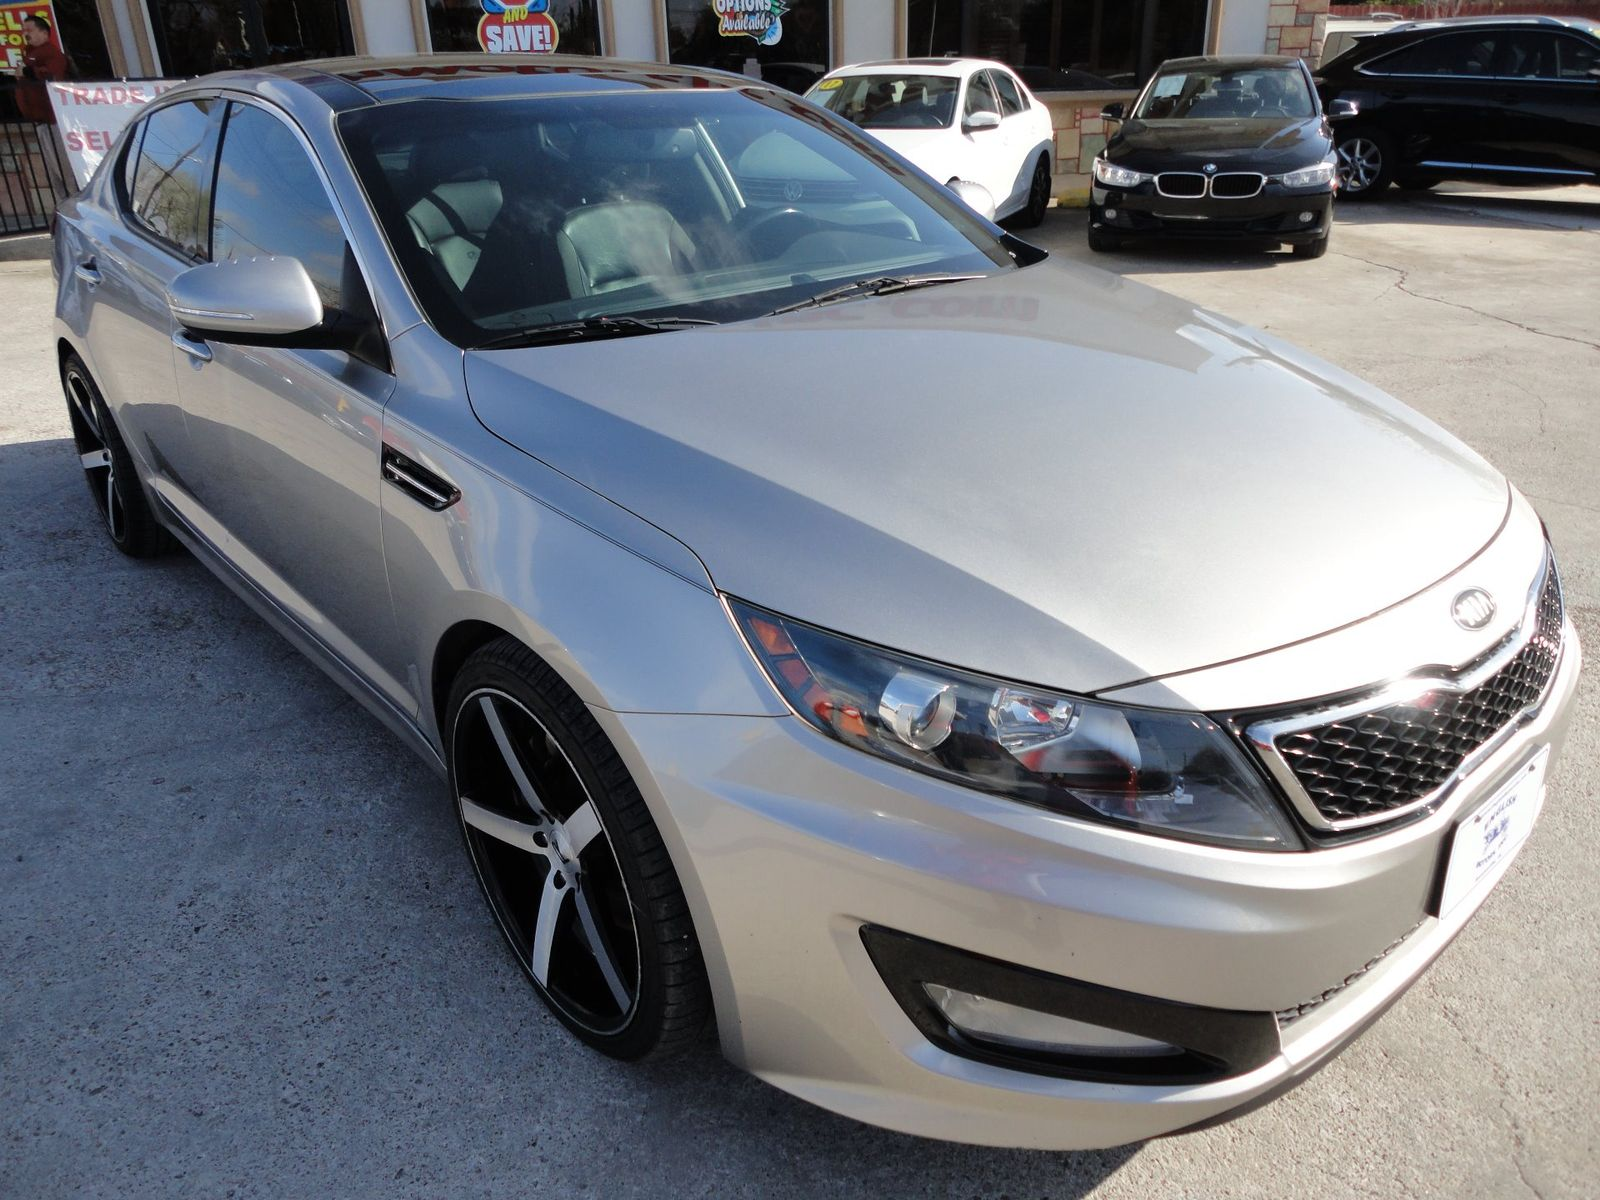 in ended auto city vin ut en salvage salt carfinder optima lot lake sx on auction certificate auctions online copart kia